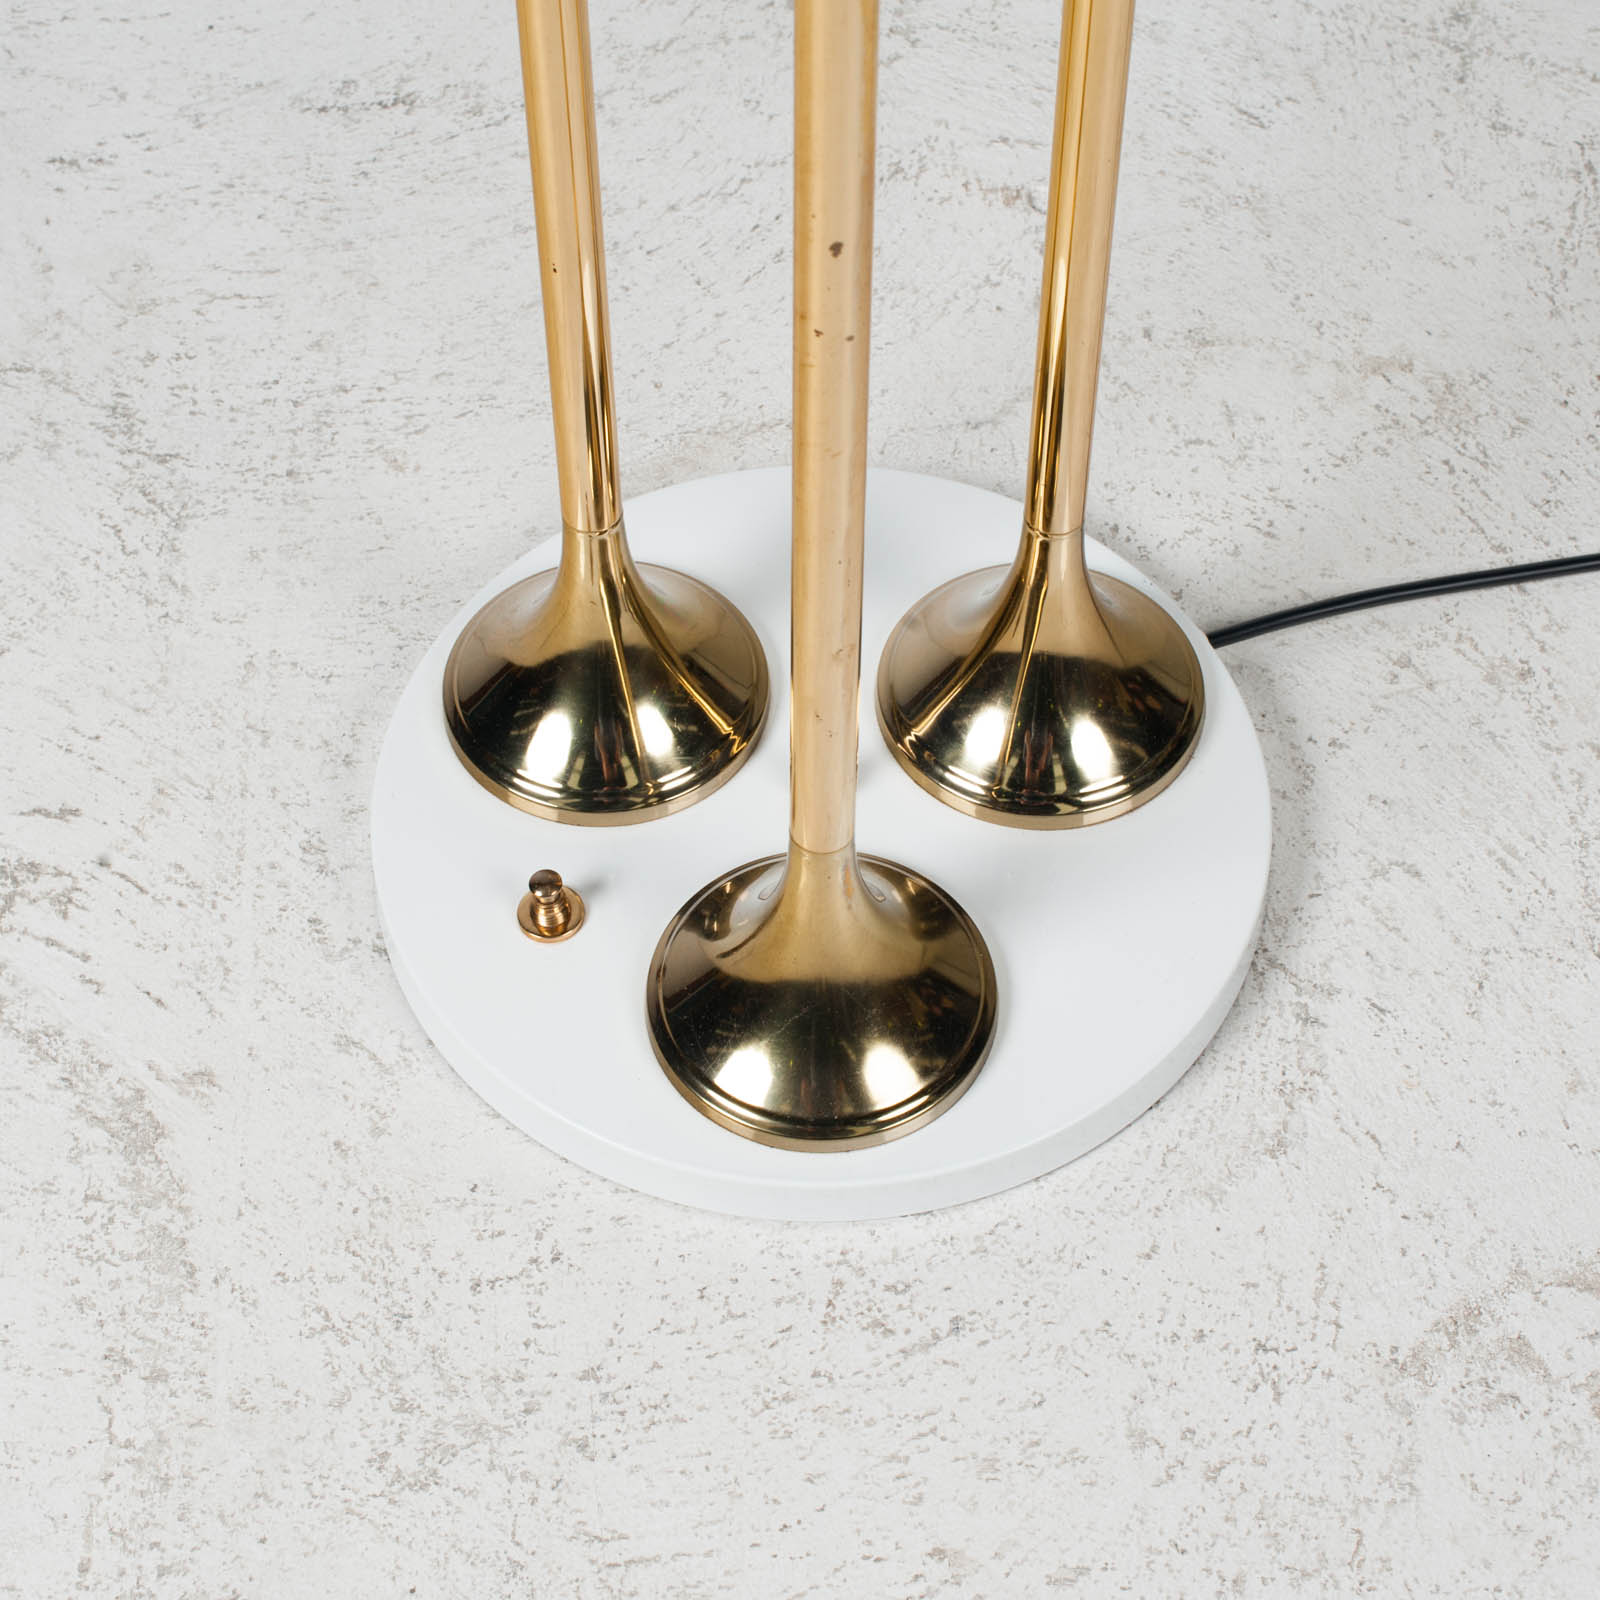 Brass Floor Lamp By Targetti Sankey 1960s Italy 03